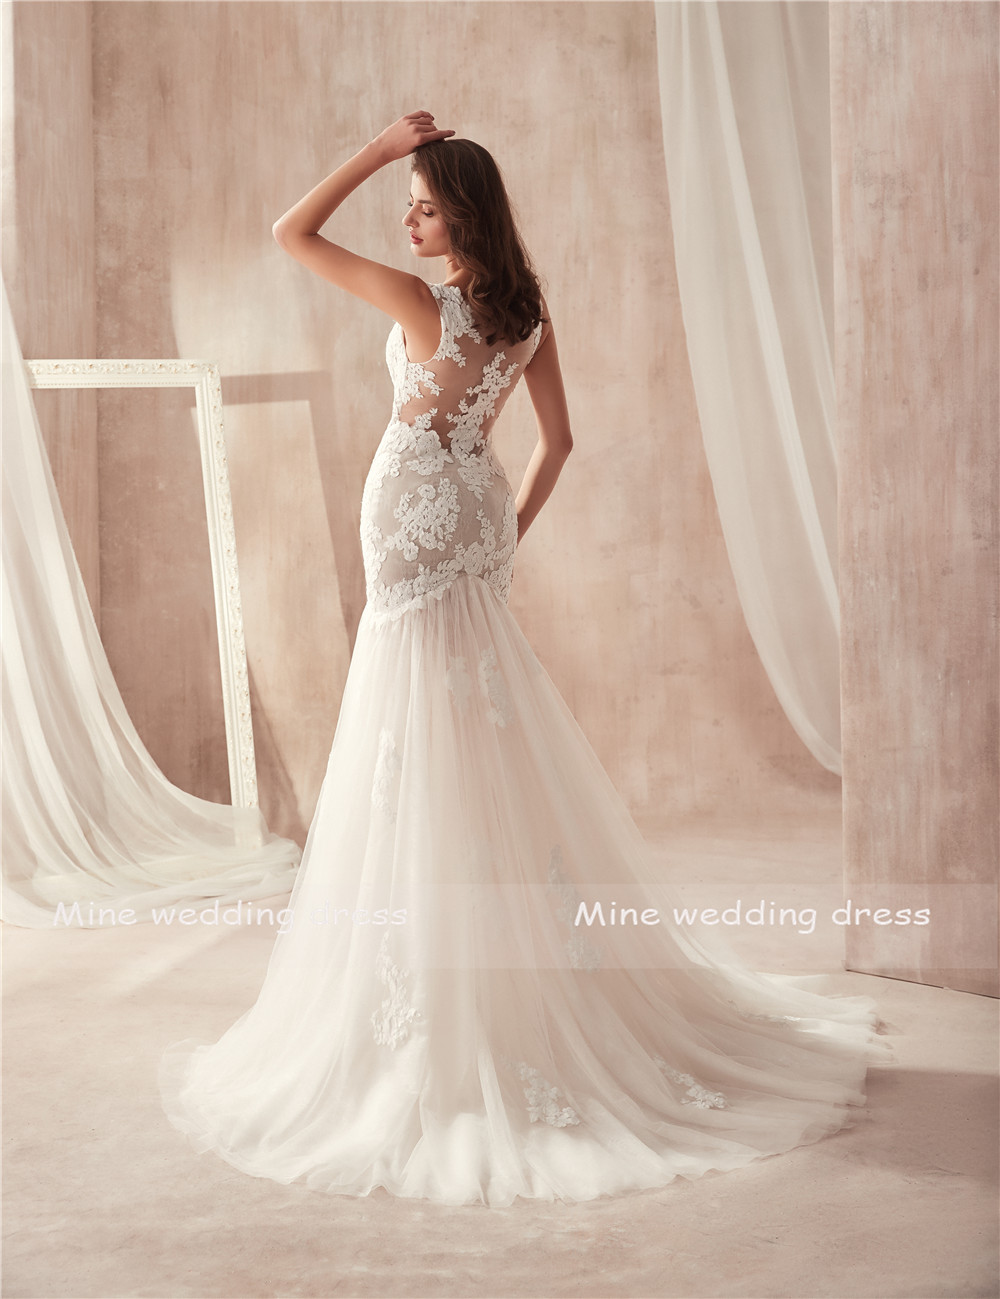 Image 4 - V neck Nude Mermaid Wedding Dress Open Back with Lace See Through Sexy Bridal Gowns vestidos de noiva-in Wedding Dresses from Weddings & Events